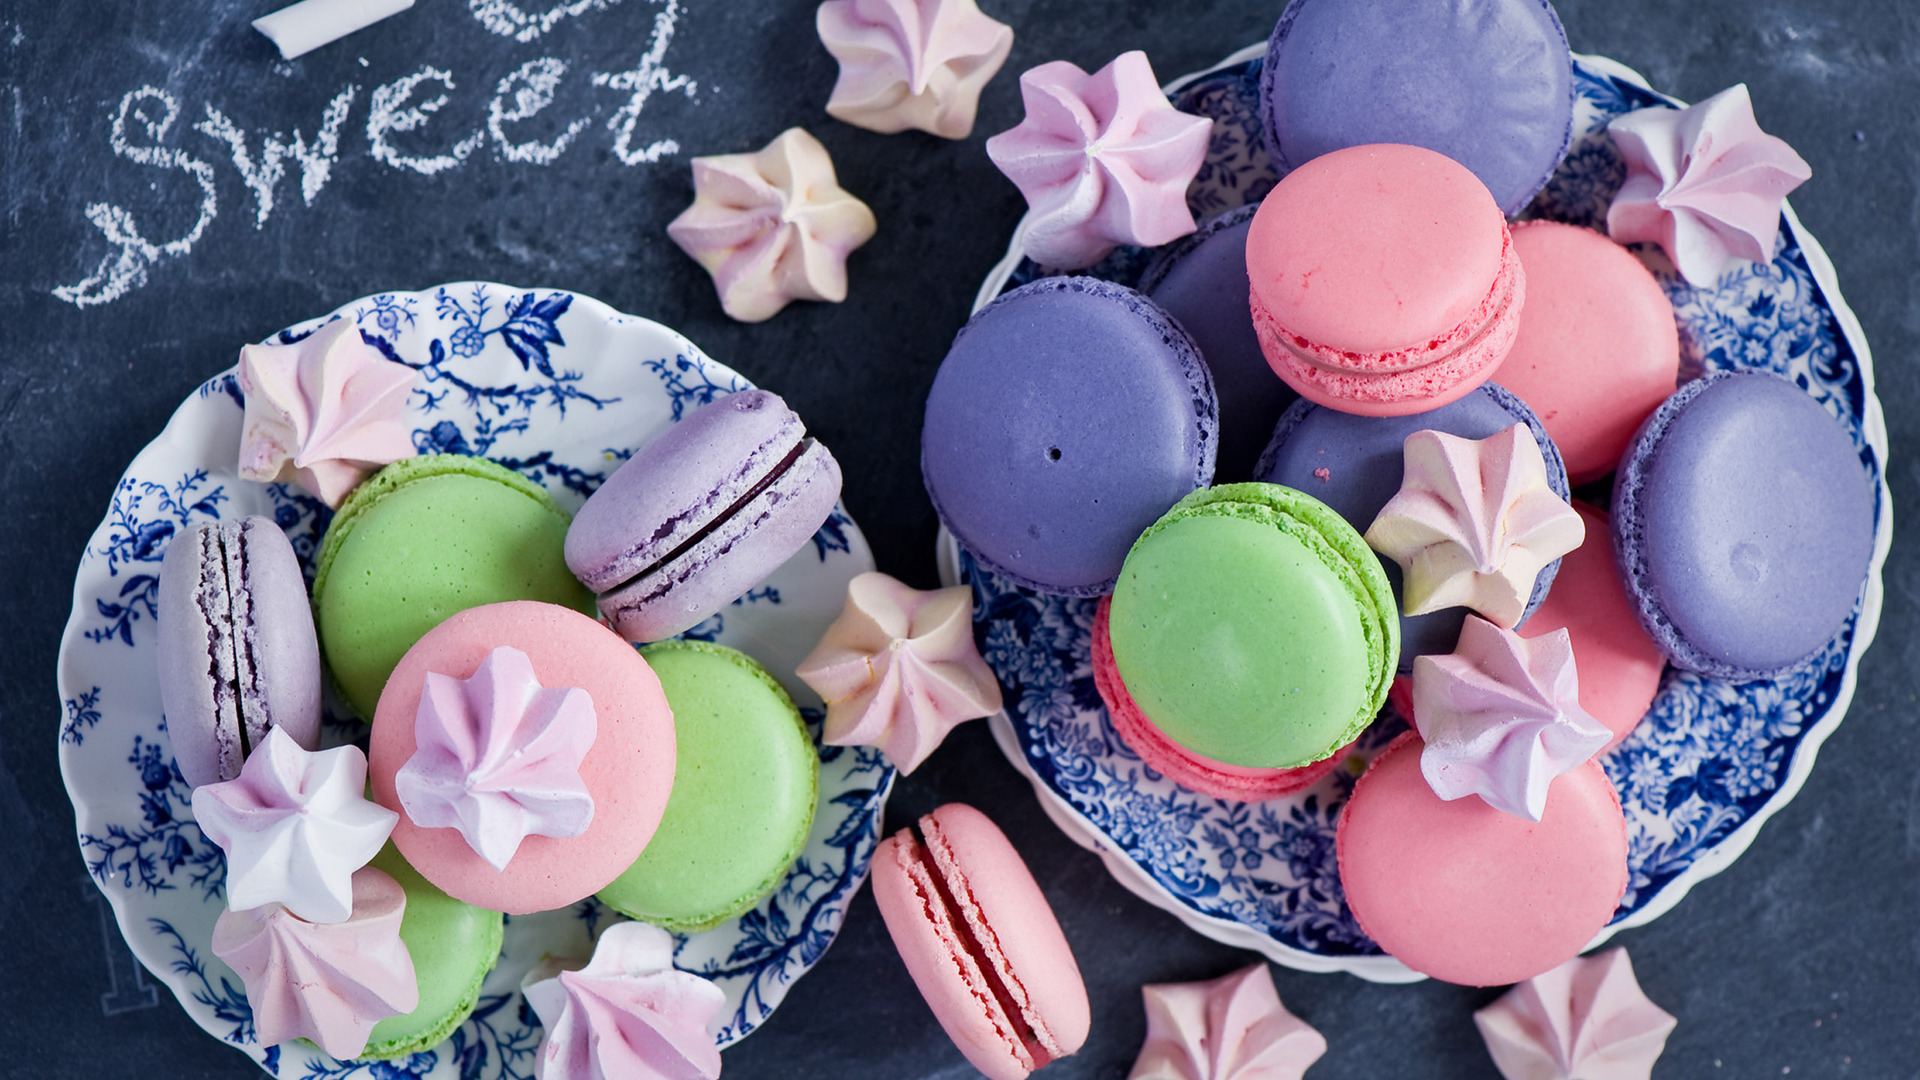 Cute Macaron Wallpaper - WallpaperSafari